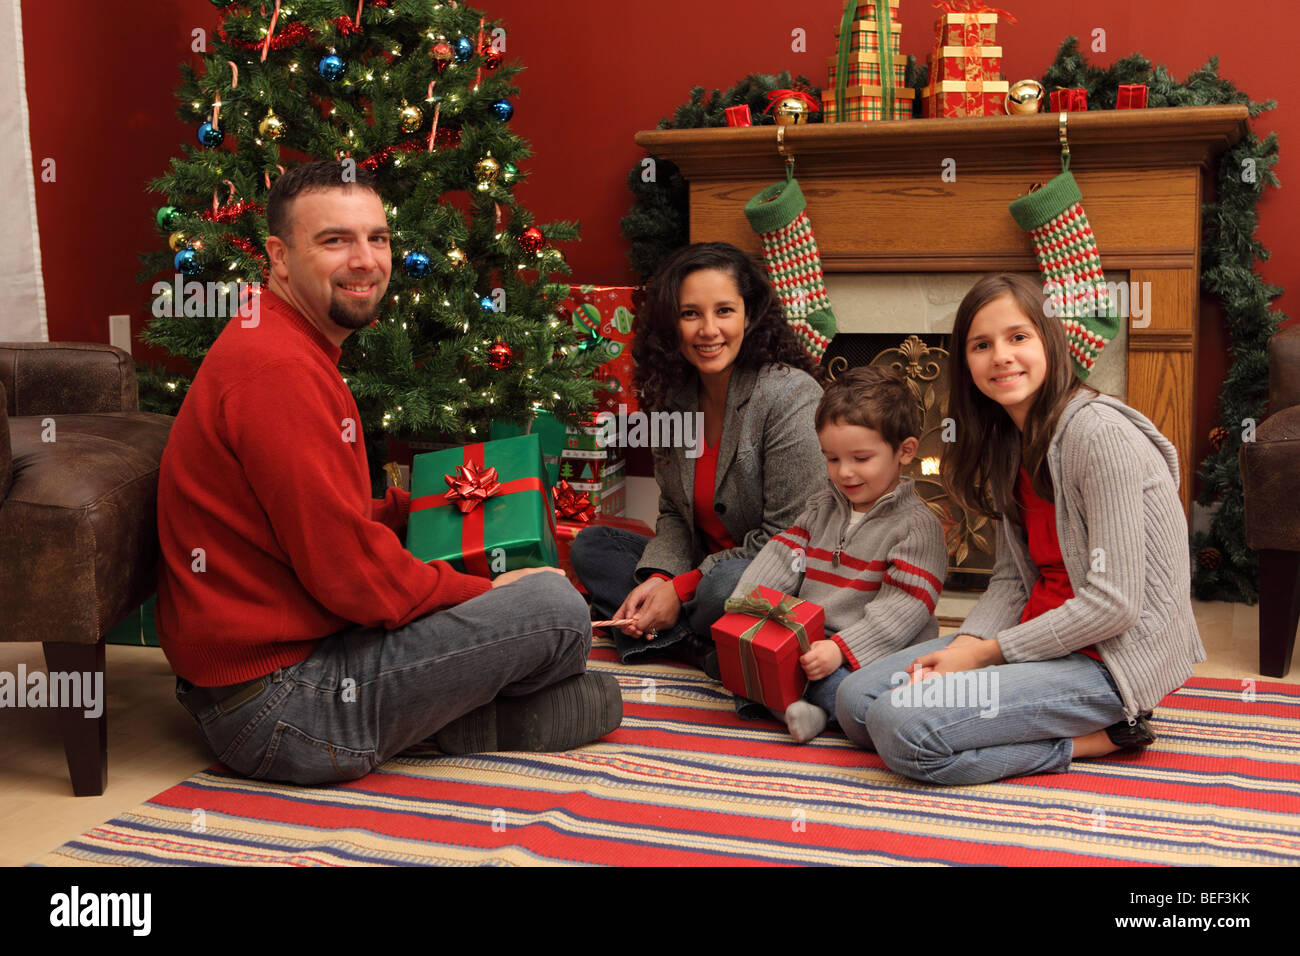 Family with gifts by Christmas tree - Stock Image